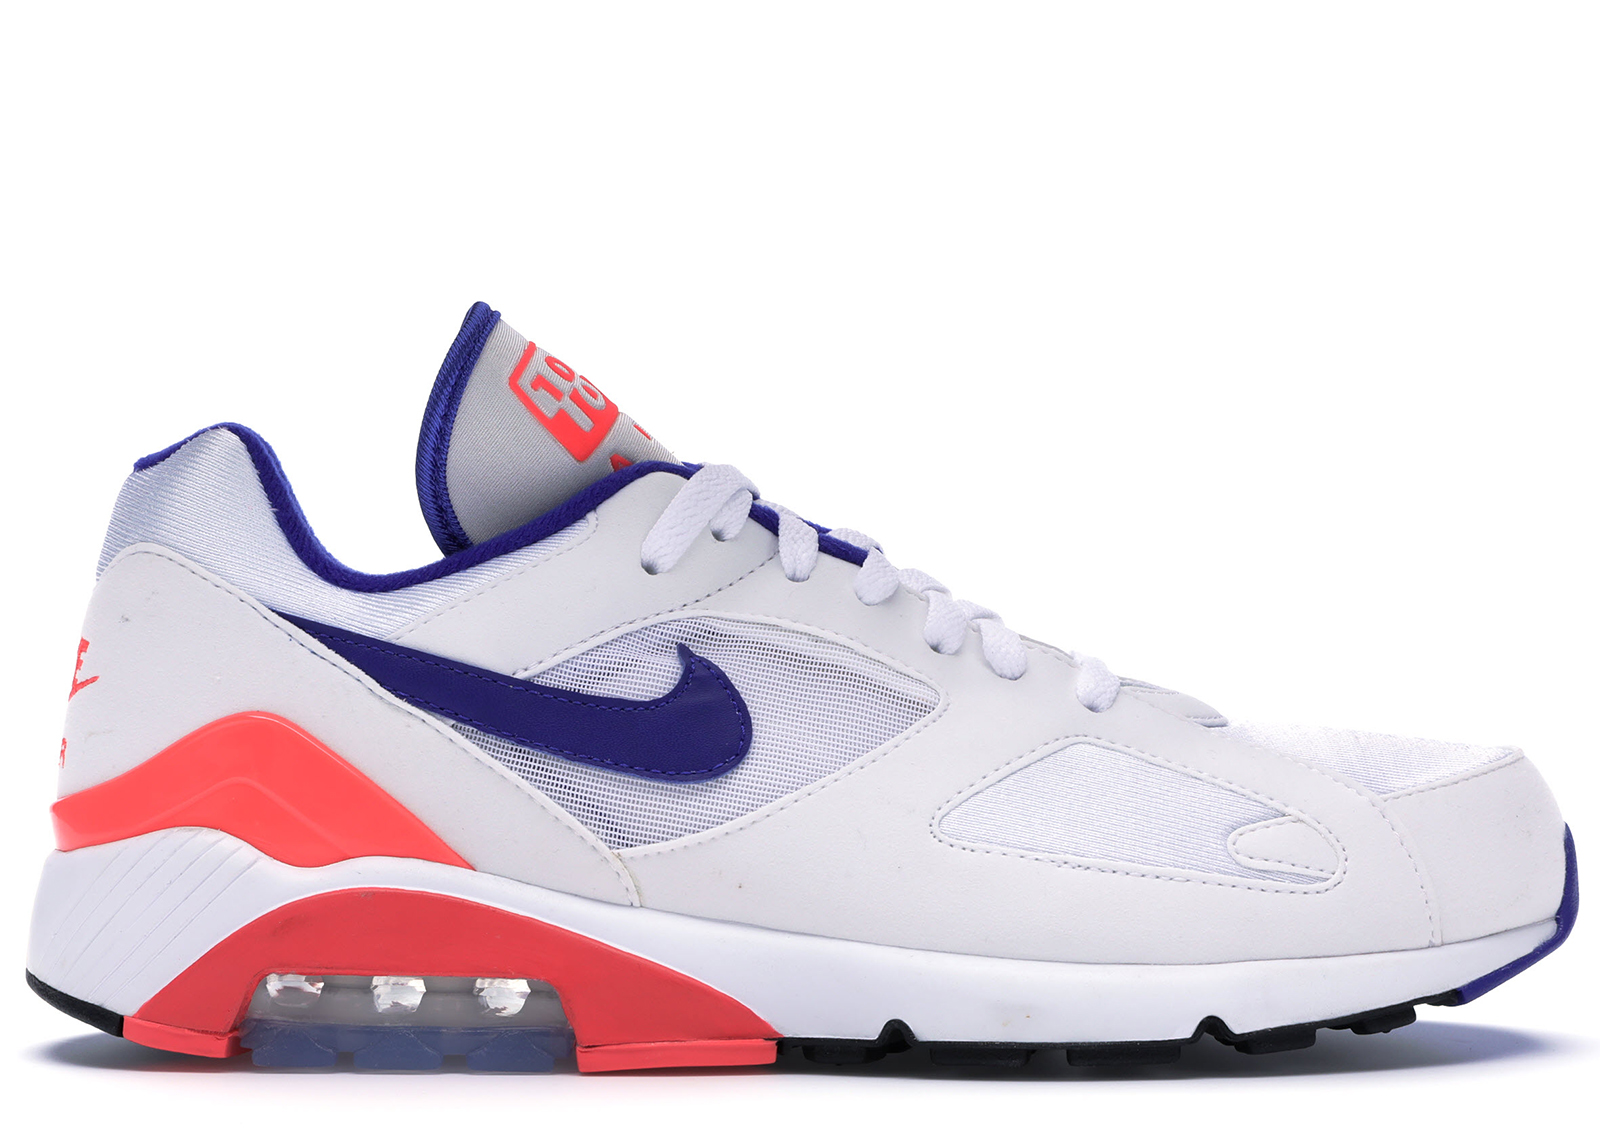 nike air max 180 ultramarine og